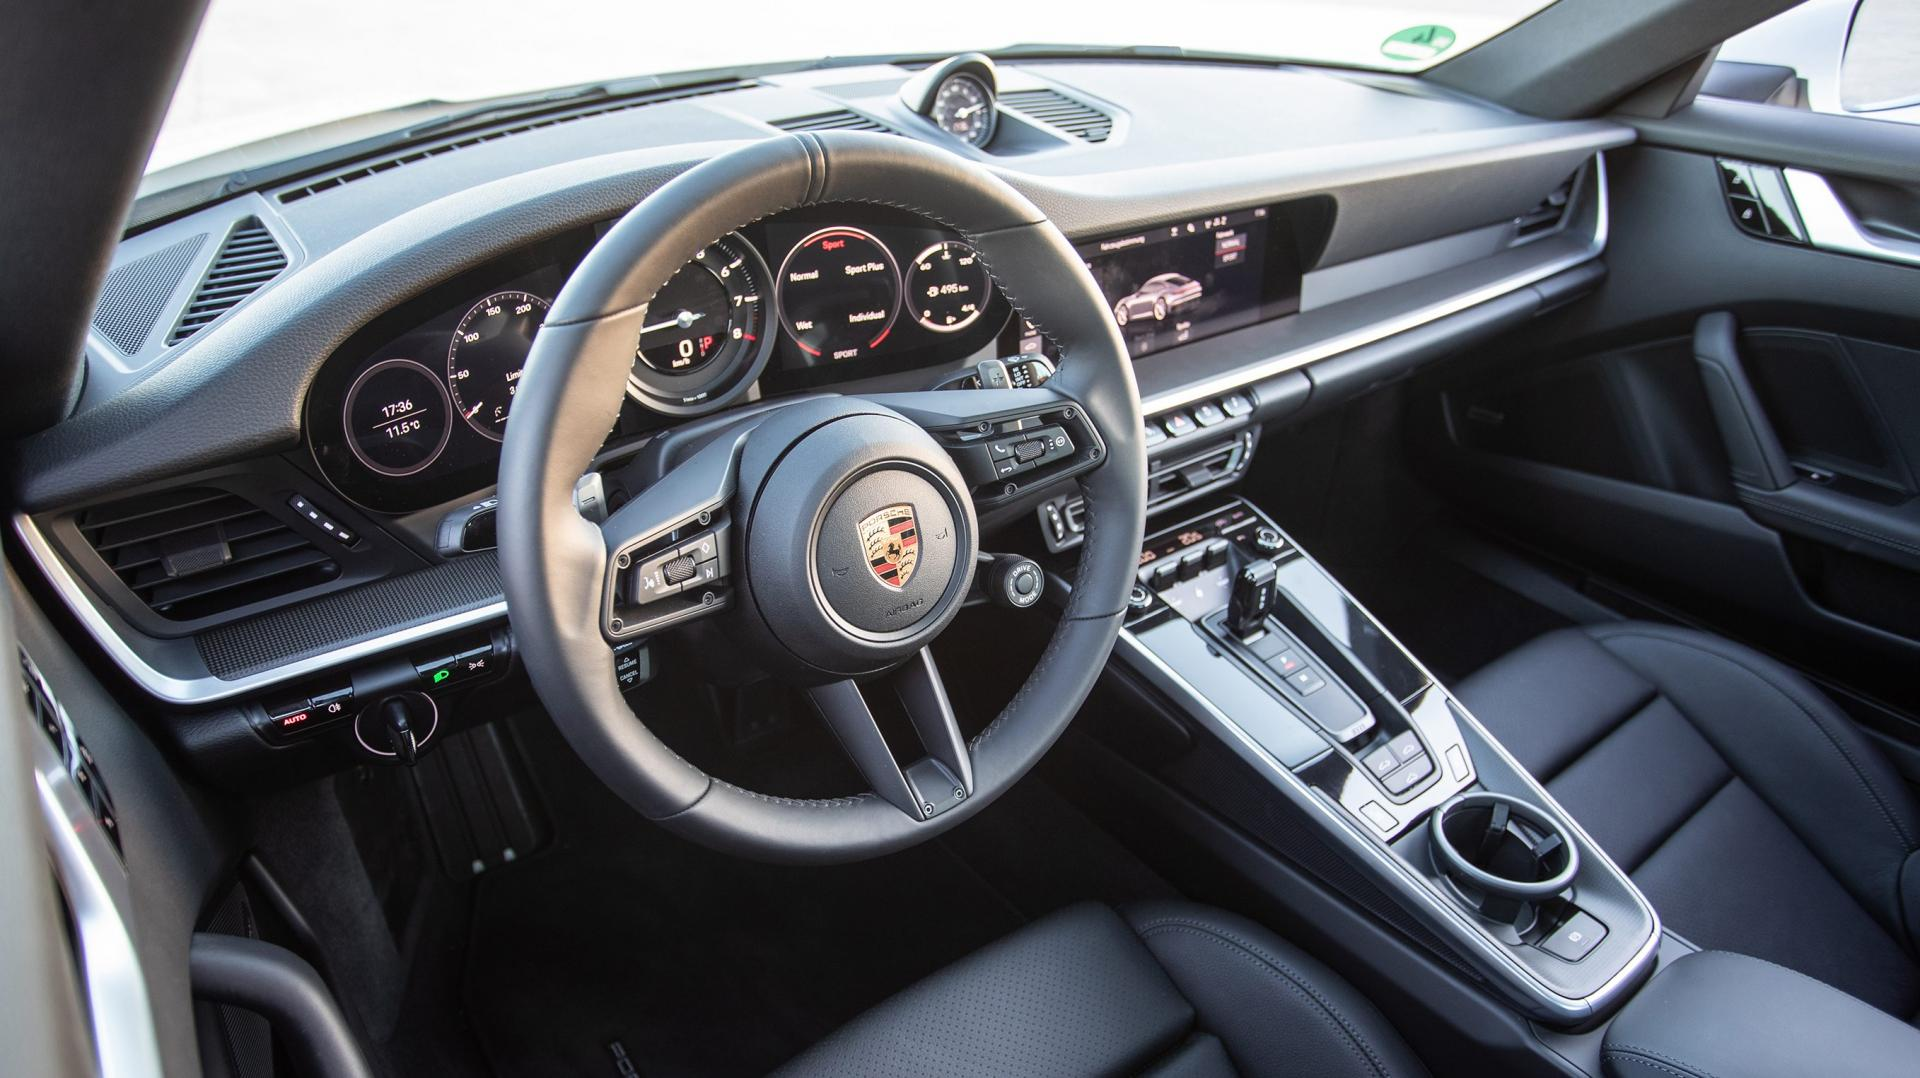 Porsche 911 Carrera 4S Sport Plus interieur dashboard